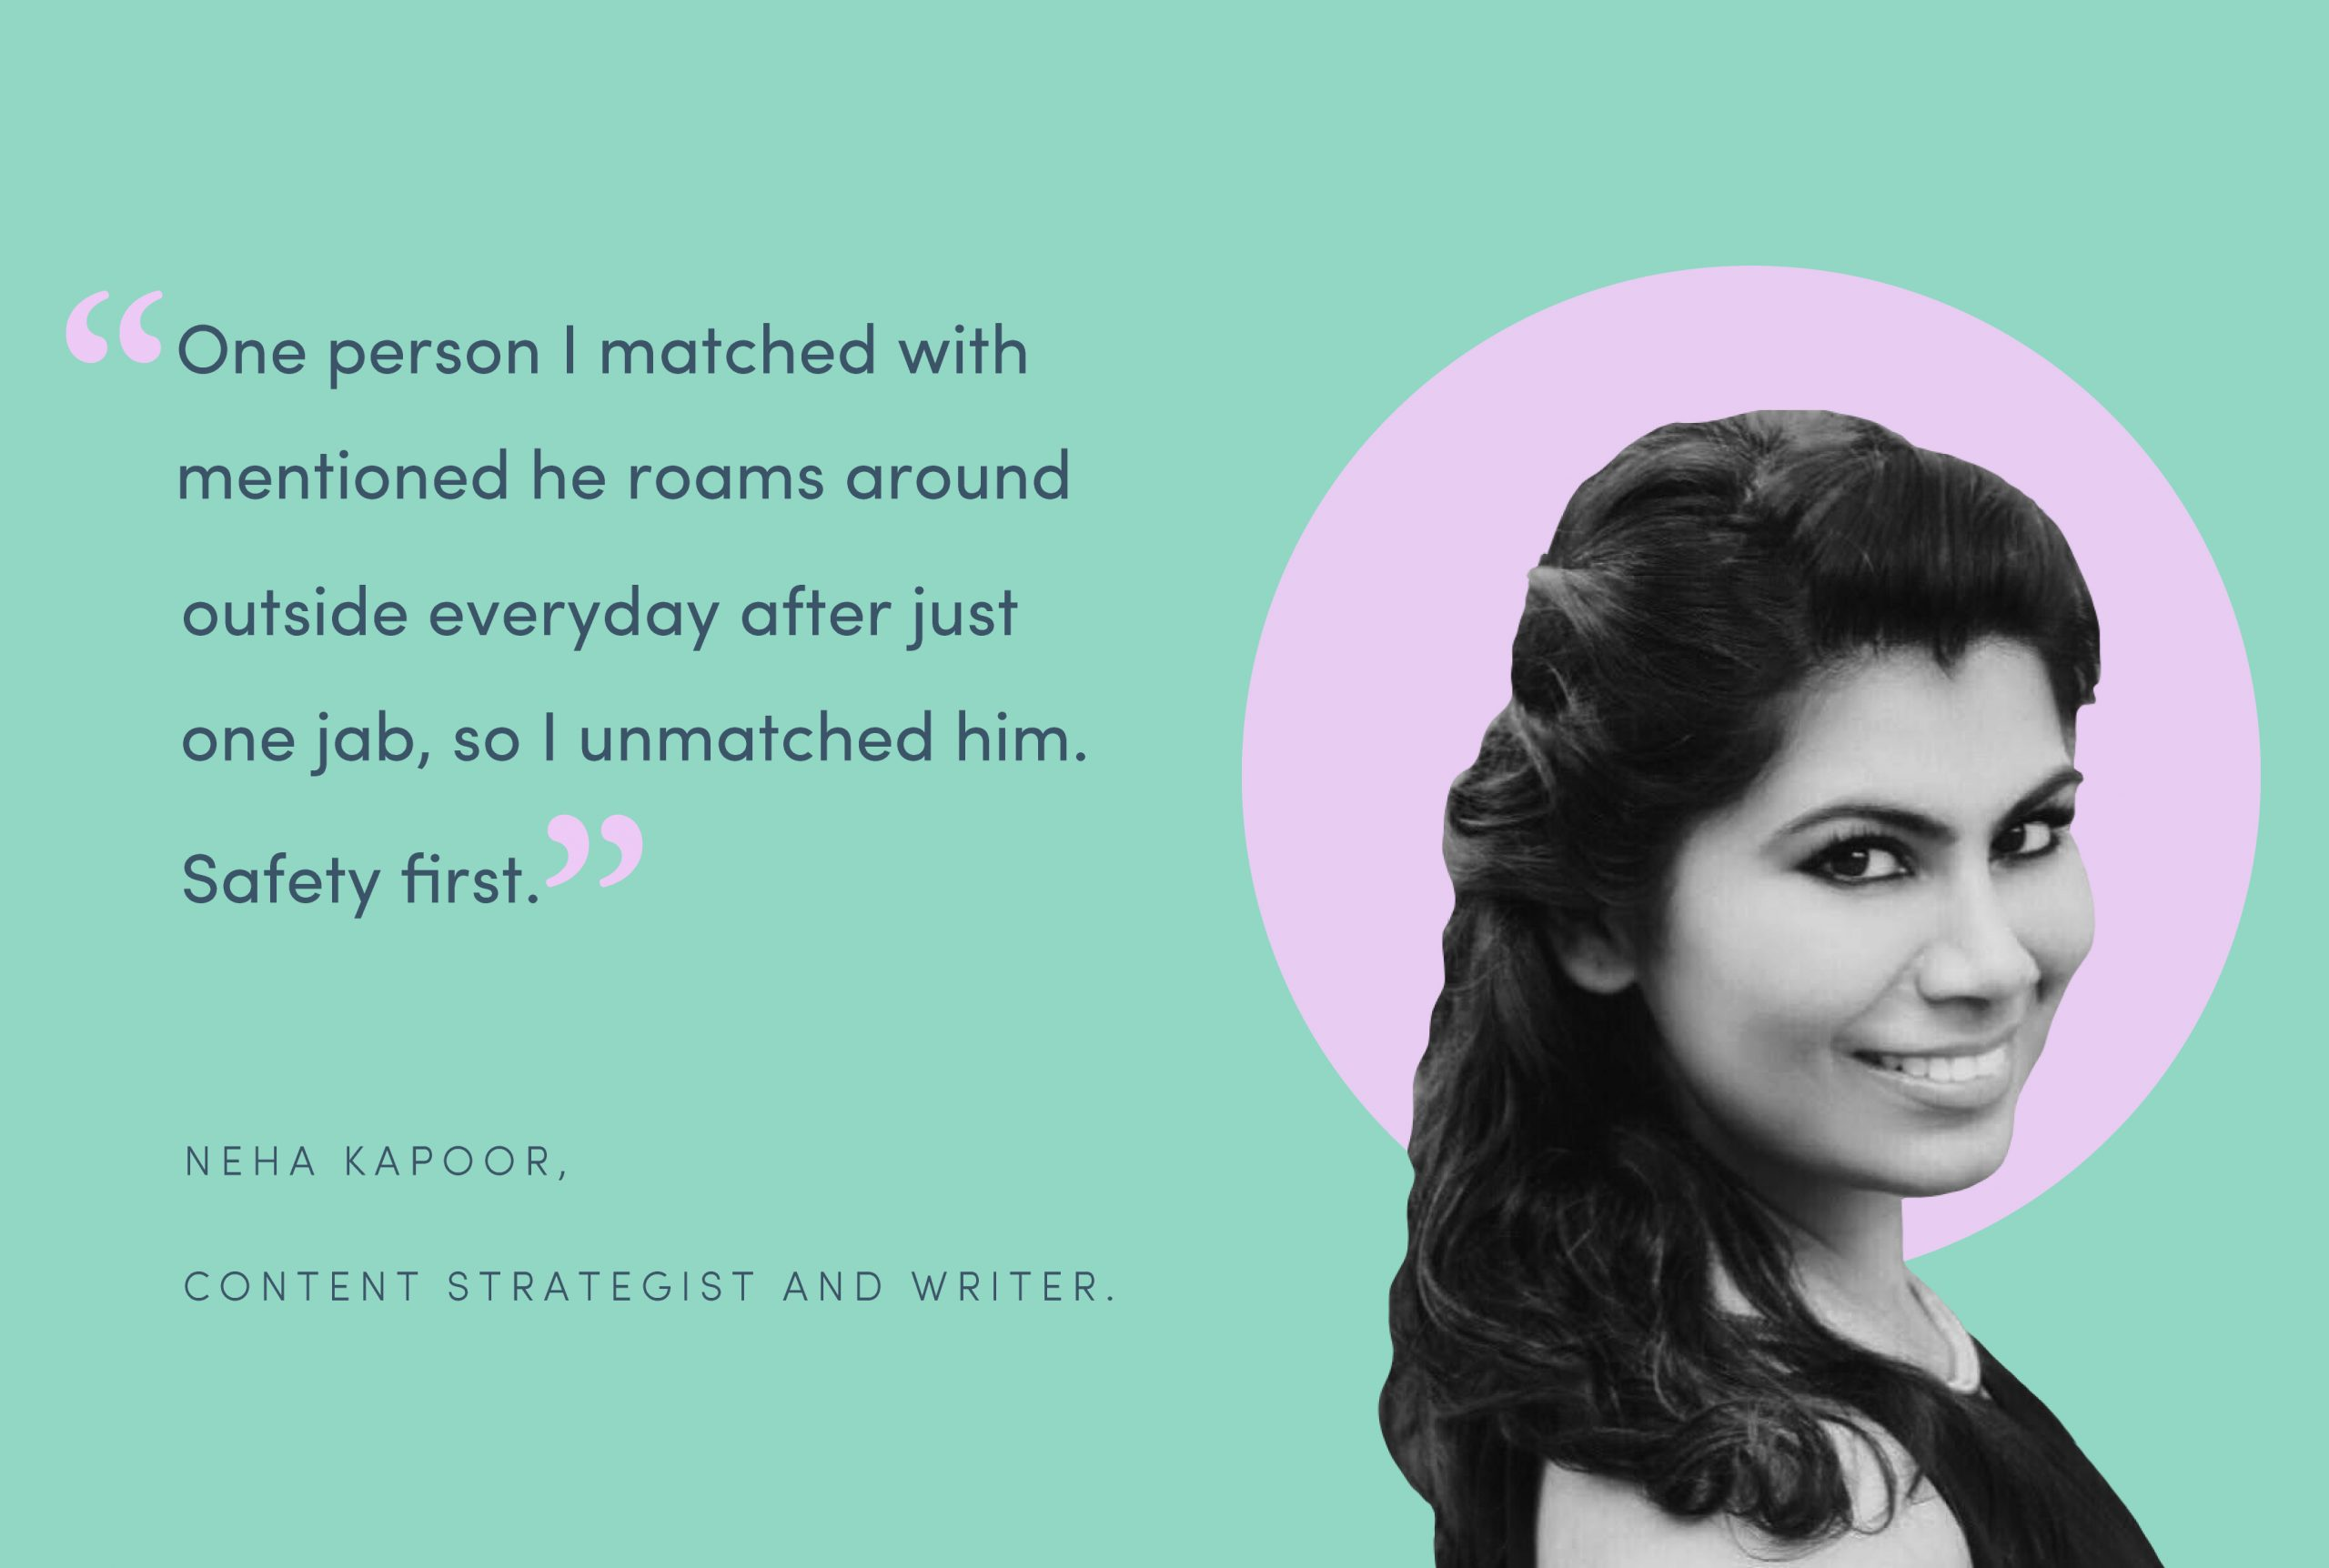 """Image with blue background, showing an image of Neha Kapoor, a 34-year-old writer, talking about her vaccine priorities, """"One person I matched with mentioned he roams around outside everyday after just one jab, so I unmatched him. Safety first."""""""